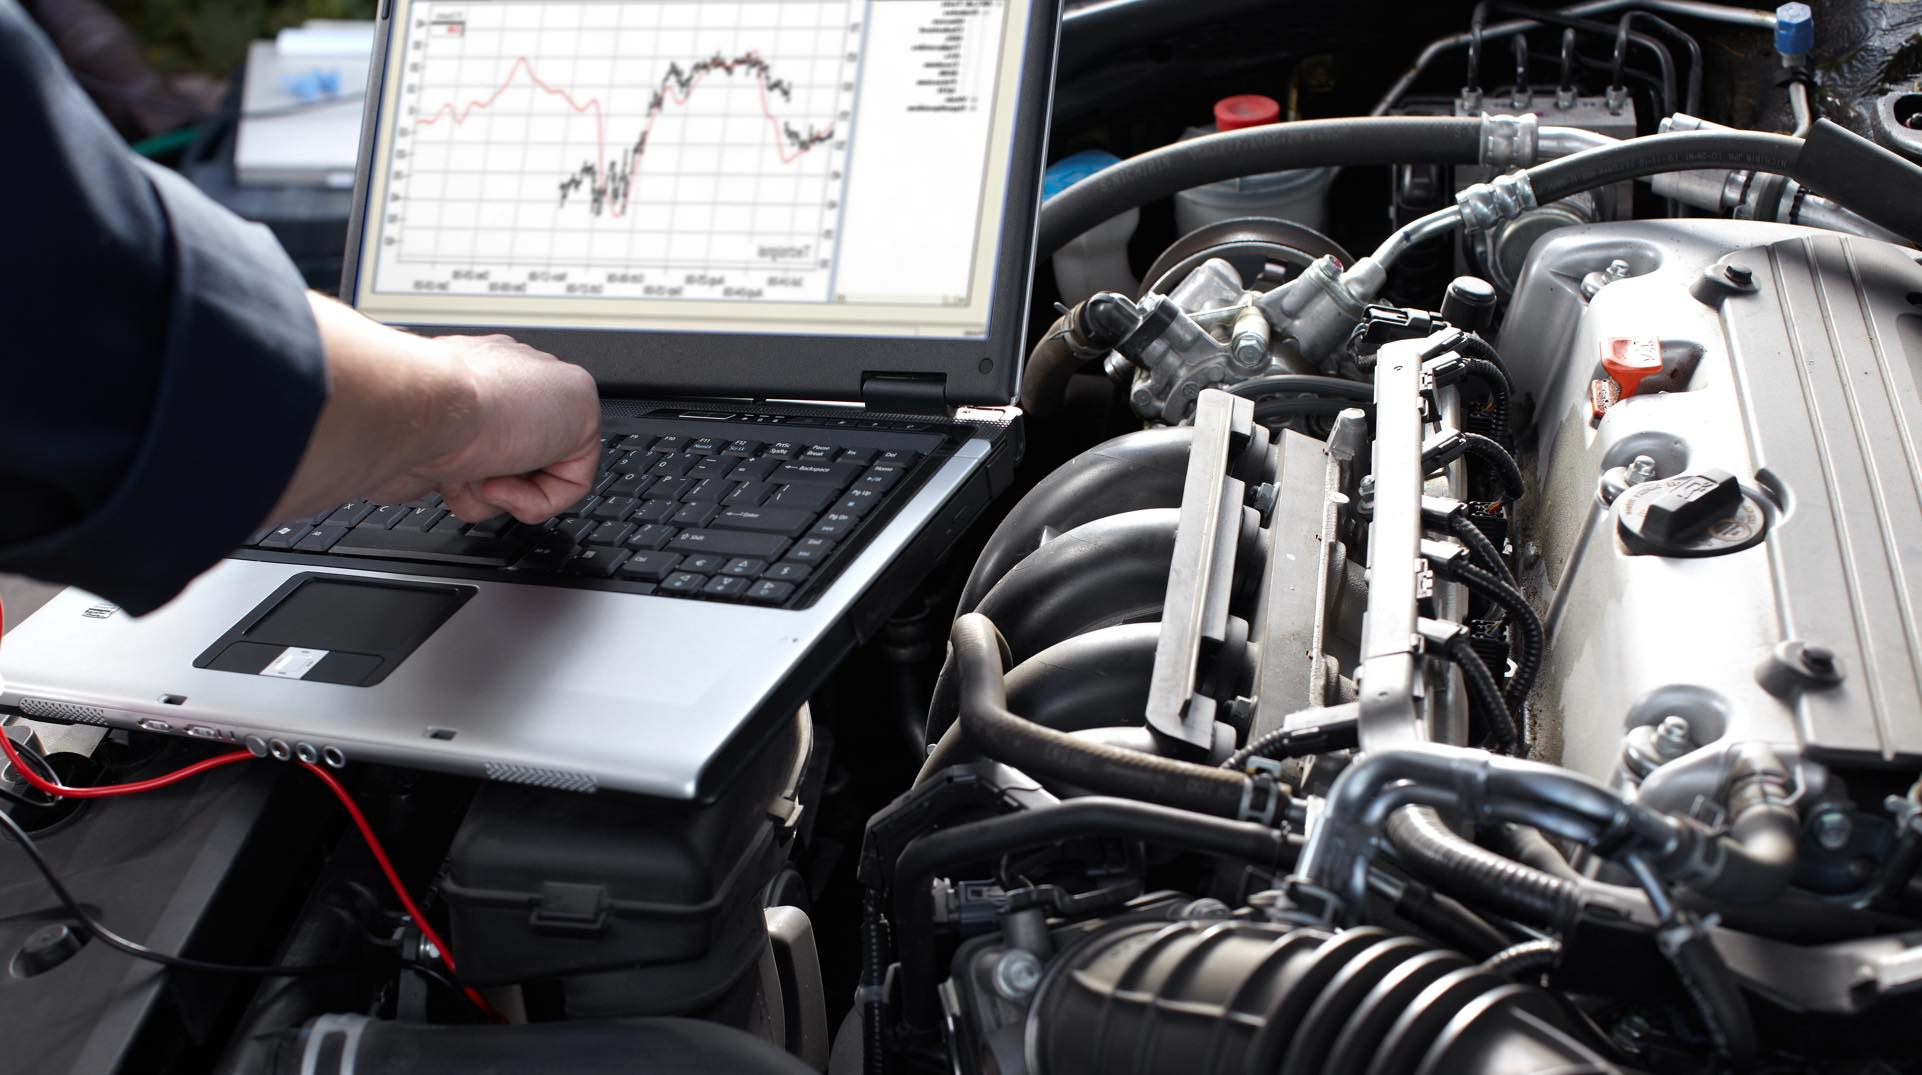 Laptop perched on a car engine